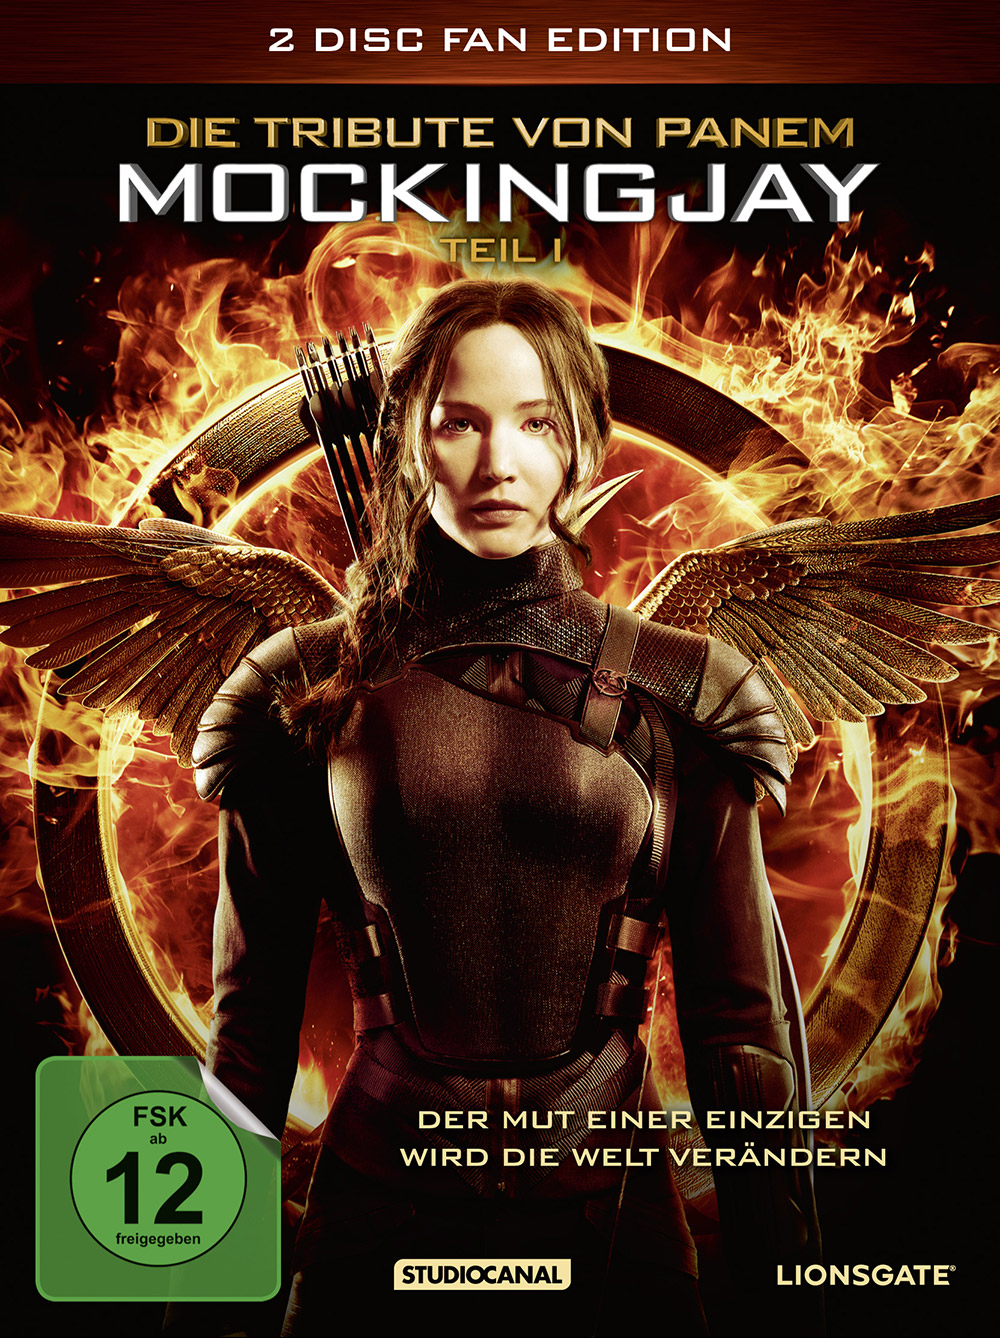 DieTributeVonPanem-Mockingjay1_FanEdition_DVD_klein